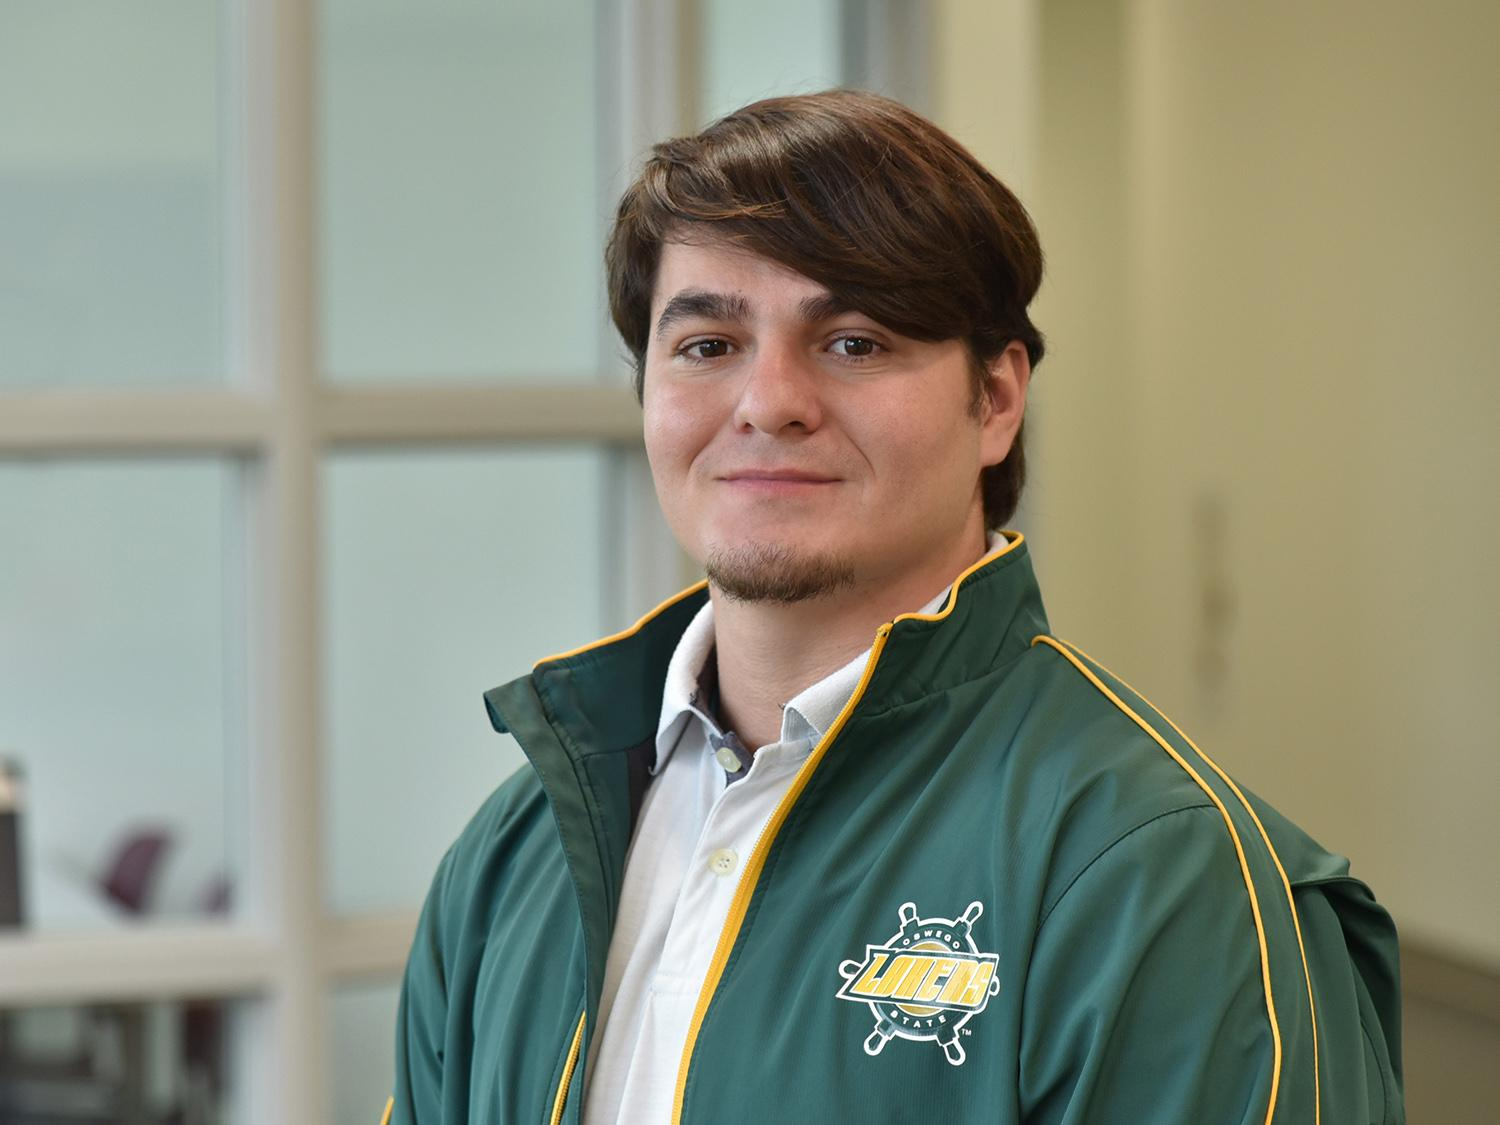 Cesar Figueroa is pursuing his dreams by attending Oswego as a nontraditional student